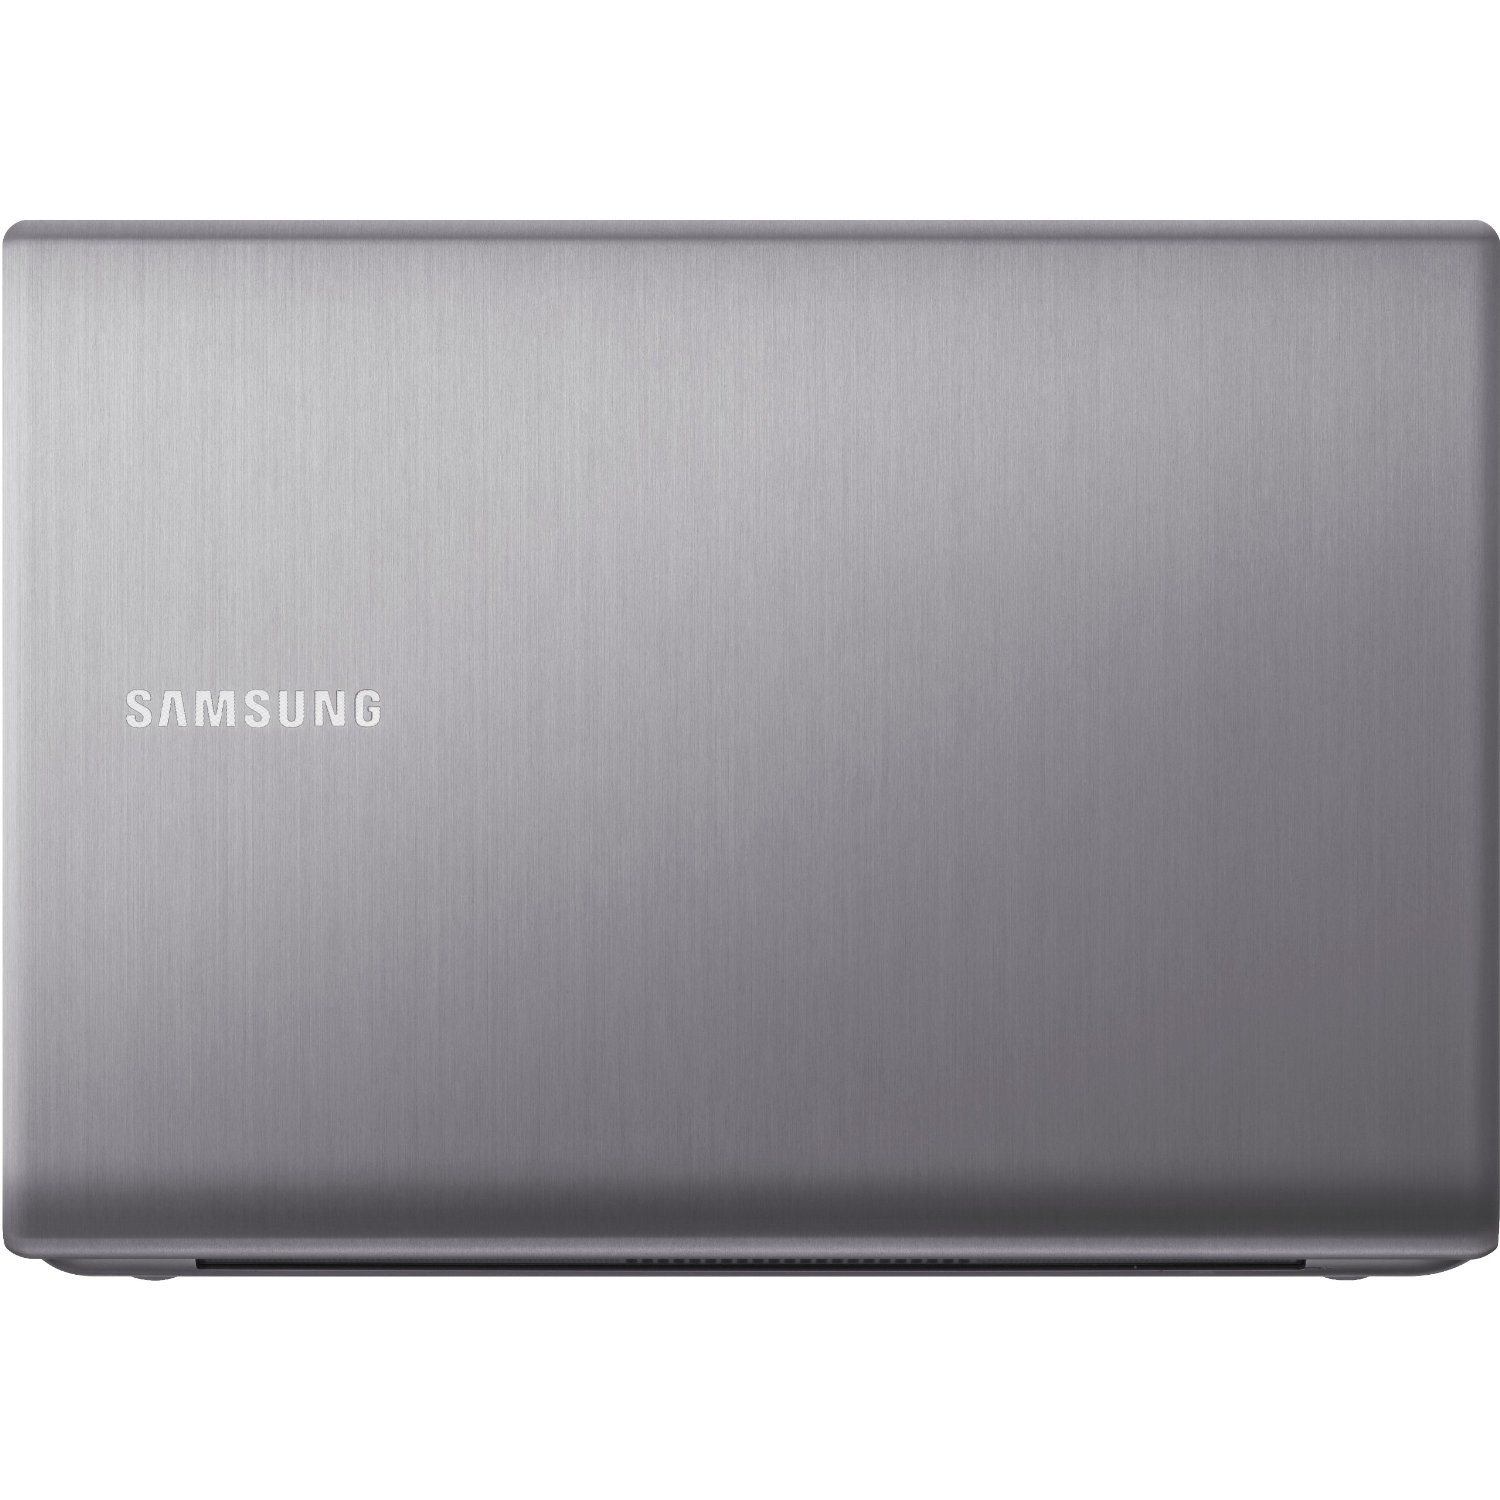 Samsung 700Z5C-S01IT